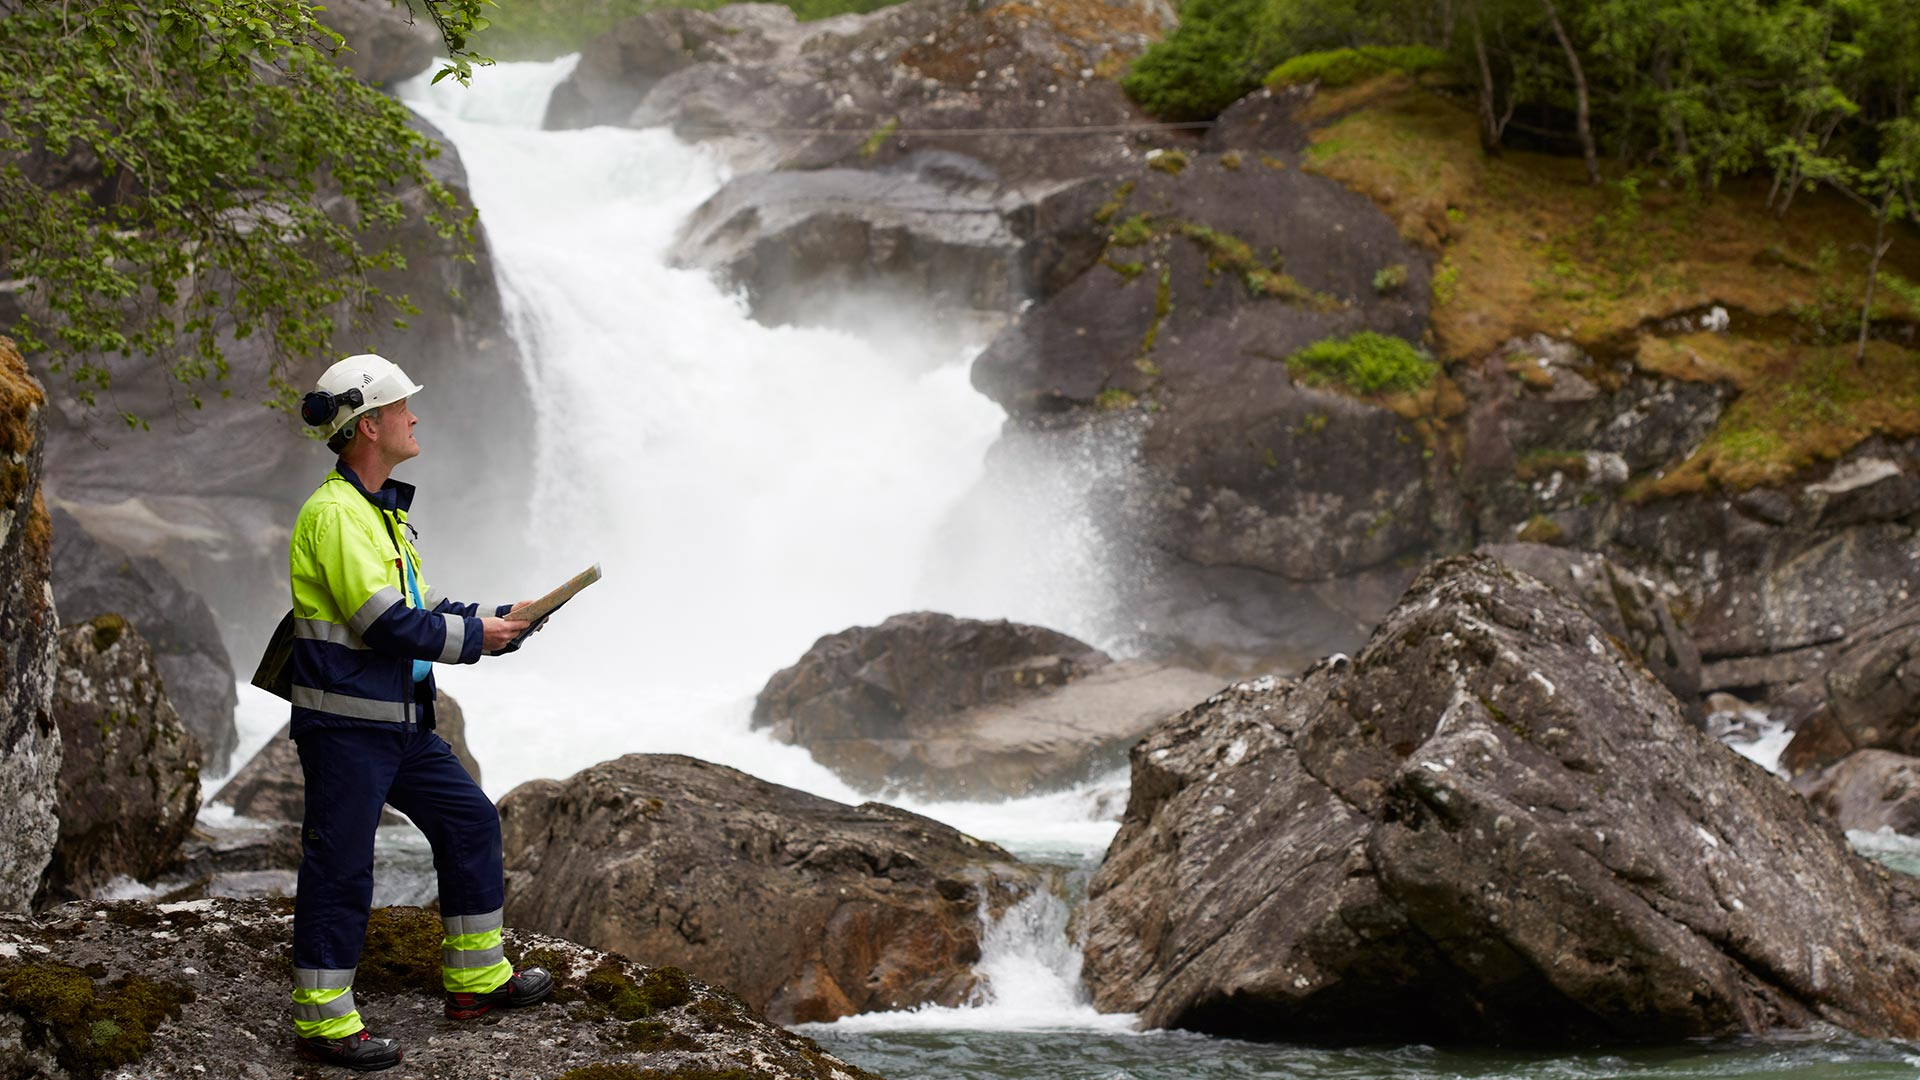 Man with helmet standing next to a waterfall